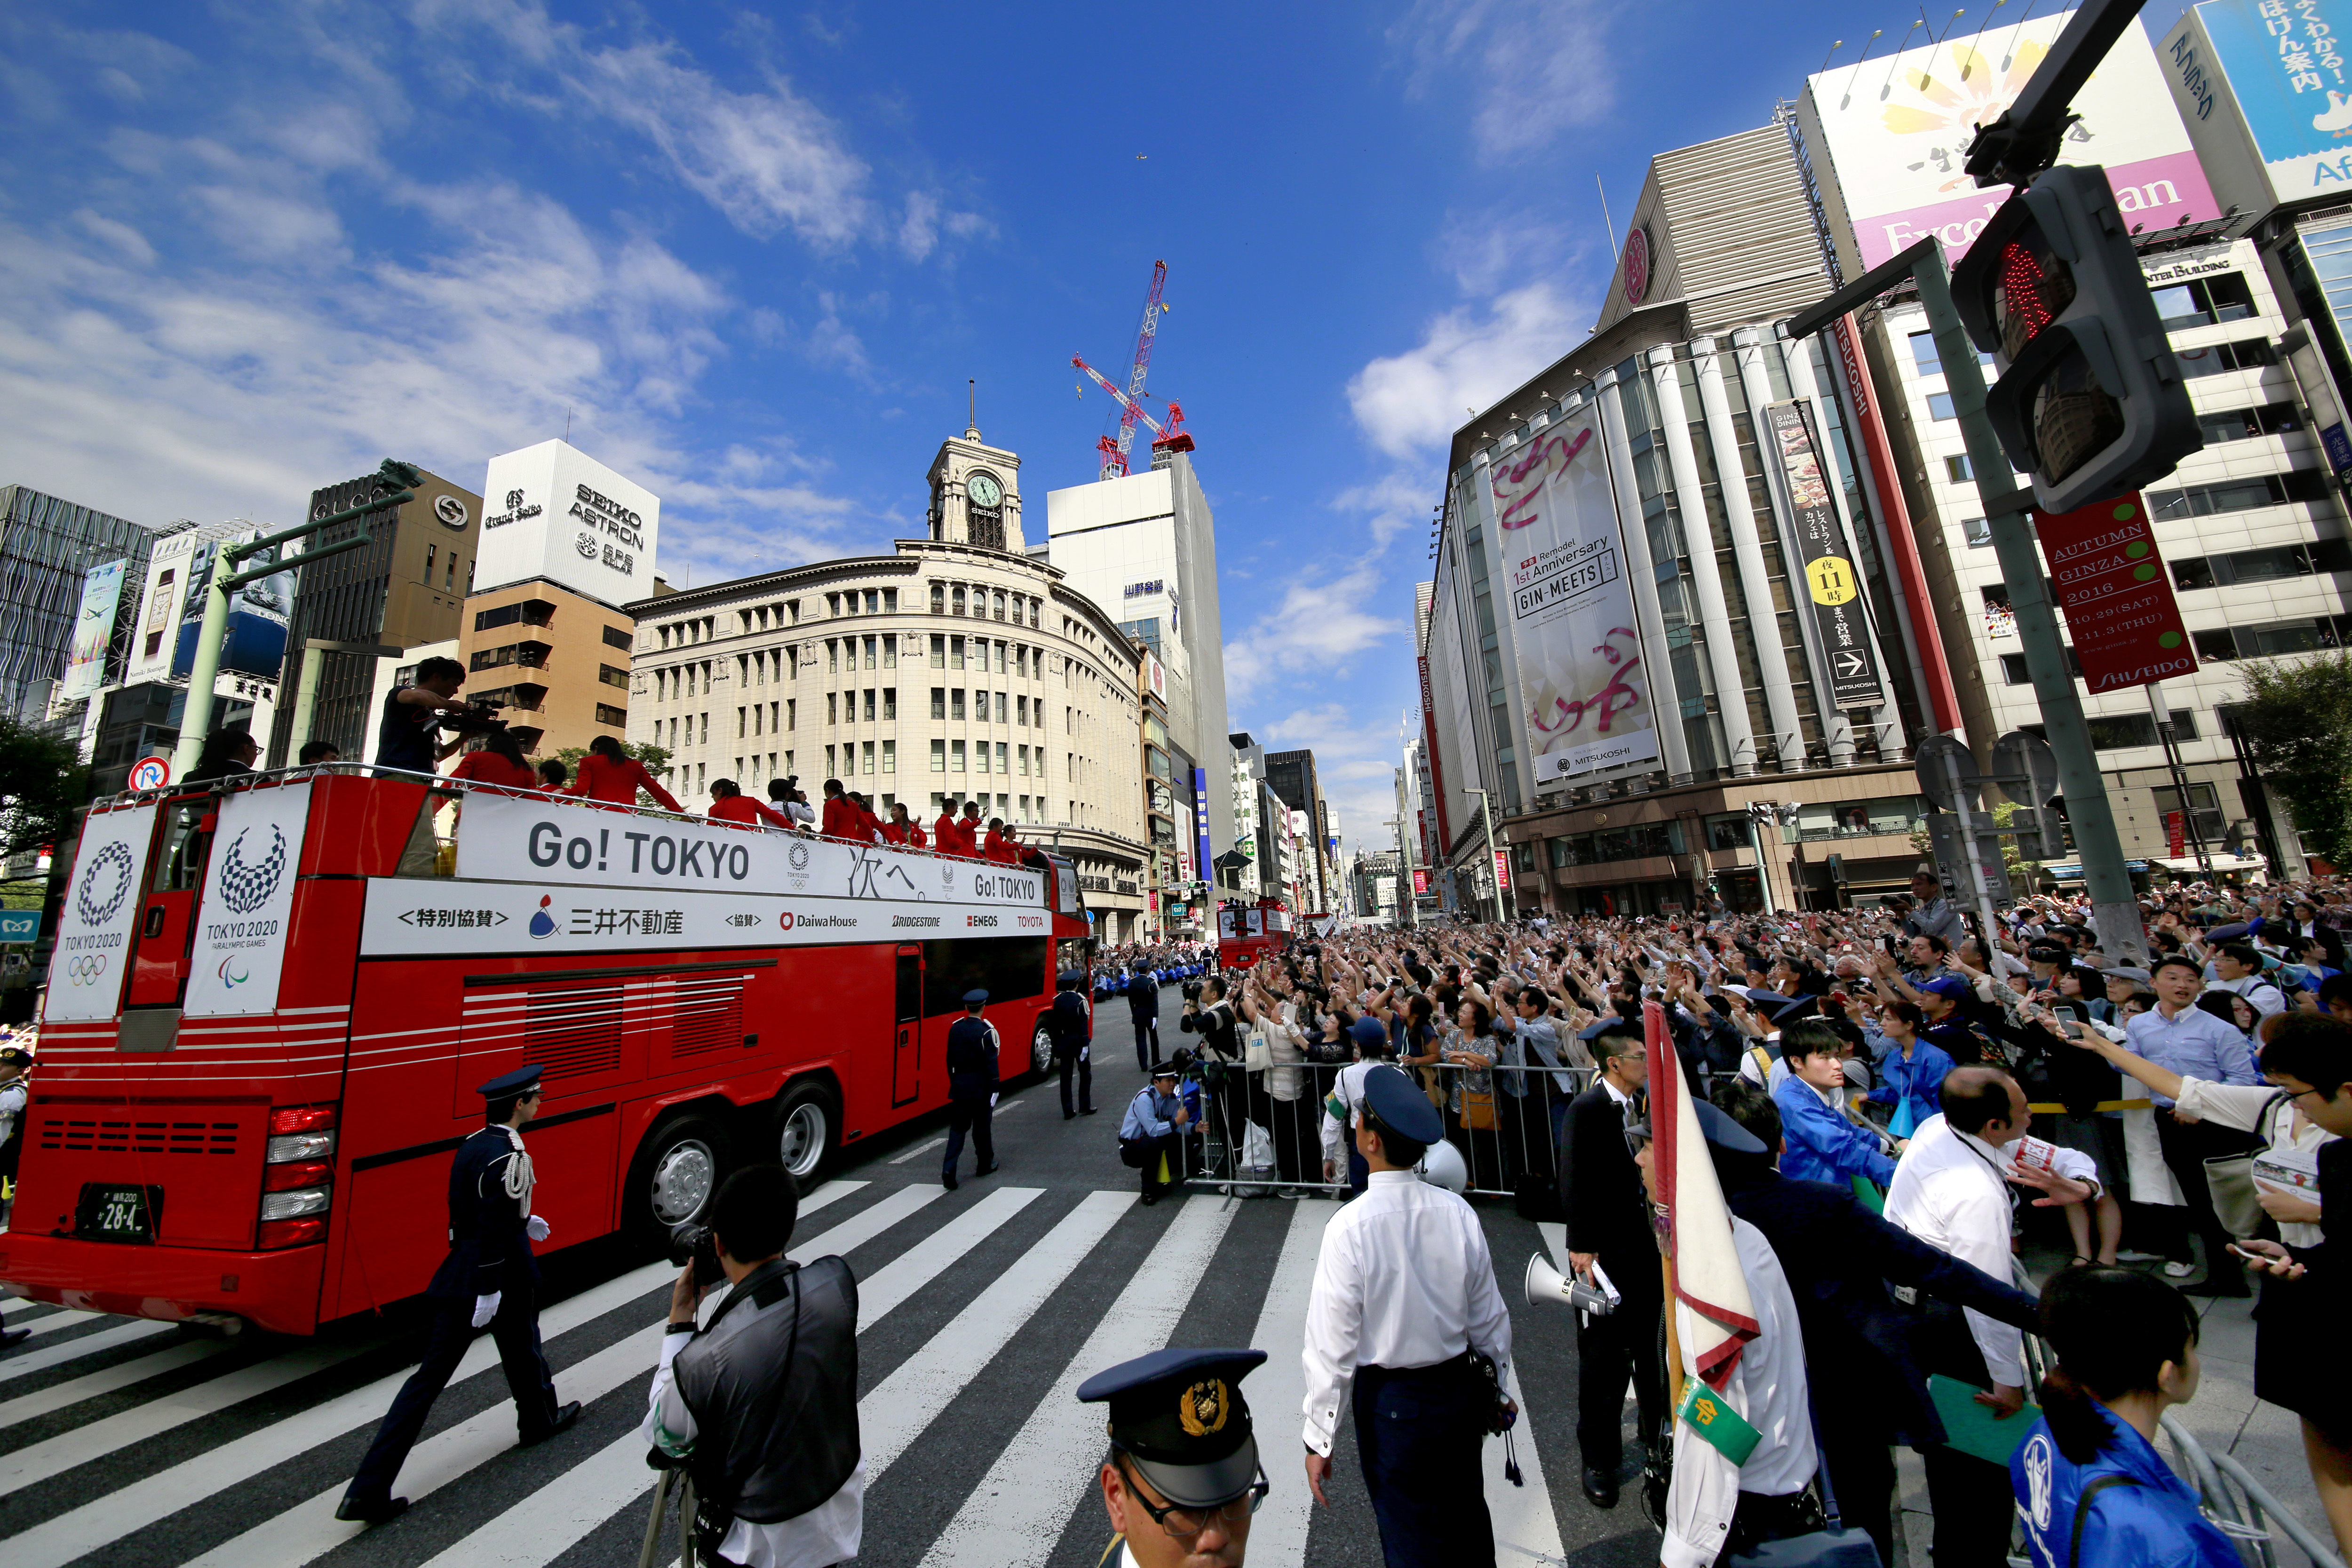 In this Friday, Oct. 7, 2016 photo, people wave at Japanese medalists of Rio de Janeiro Olympics and Paralympics during a parade in Tokyo's Ginza district. Some 90 medalists took part in the 2.5 kilometers (1.6 mile) motorcade through streets in Tokyo, th